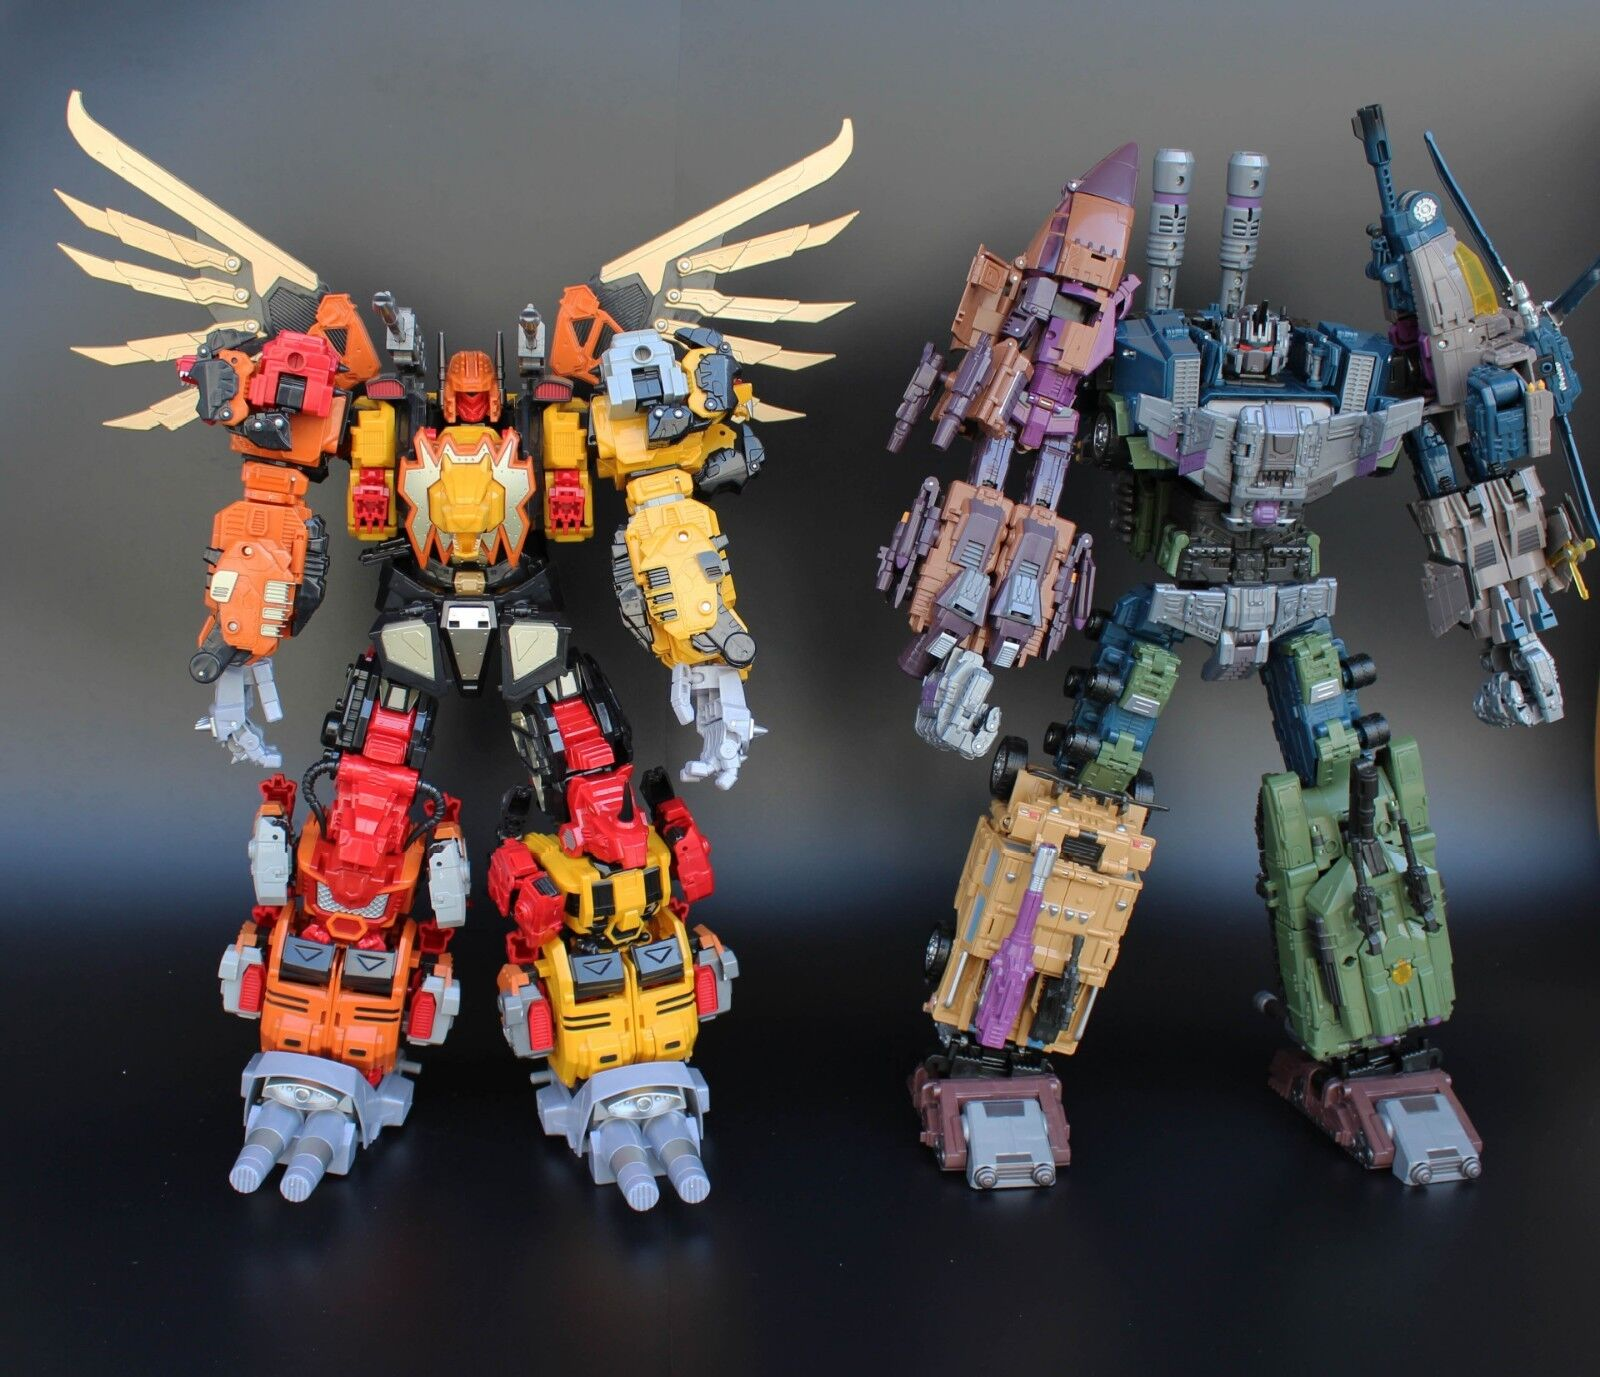 K.O. Oversized Warbotron Bruticus Predaking With Weapon And Upgrade Kit In Box